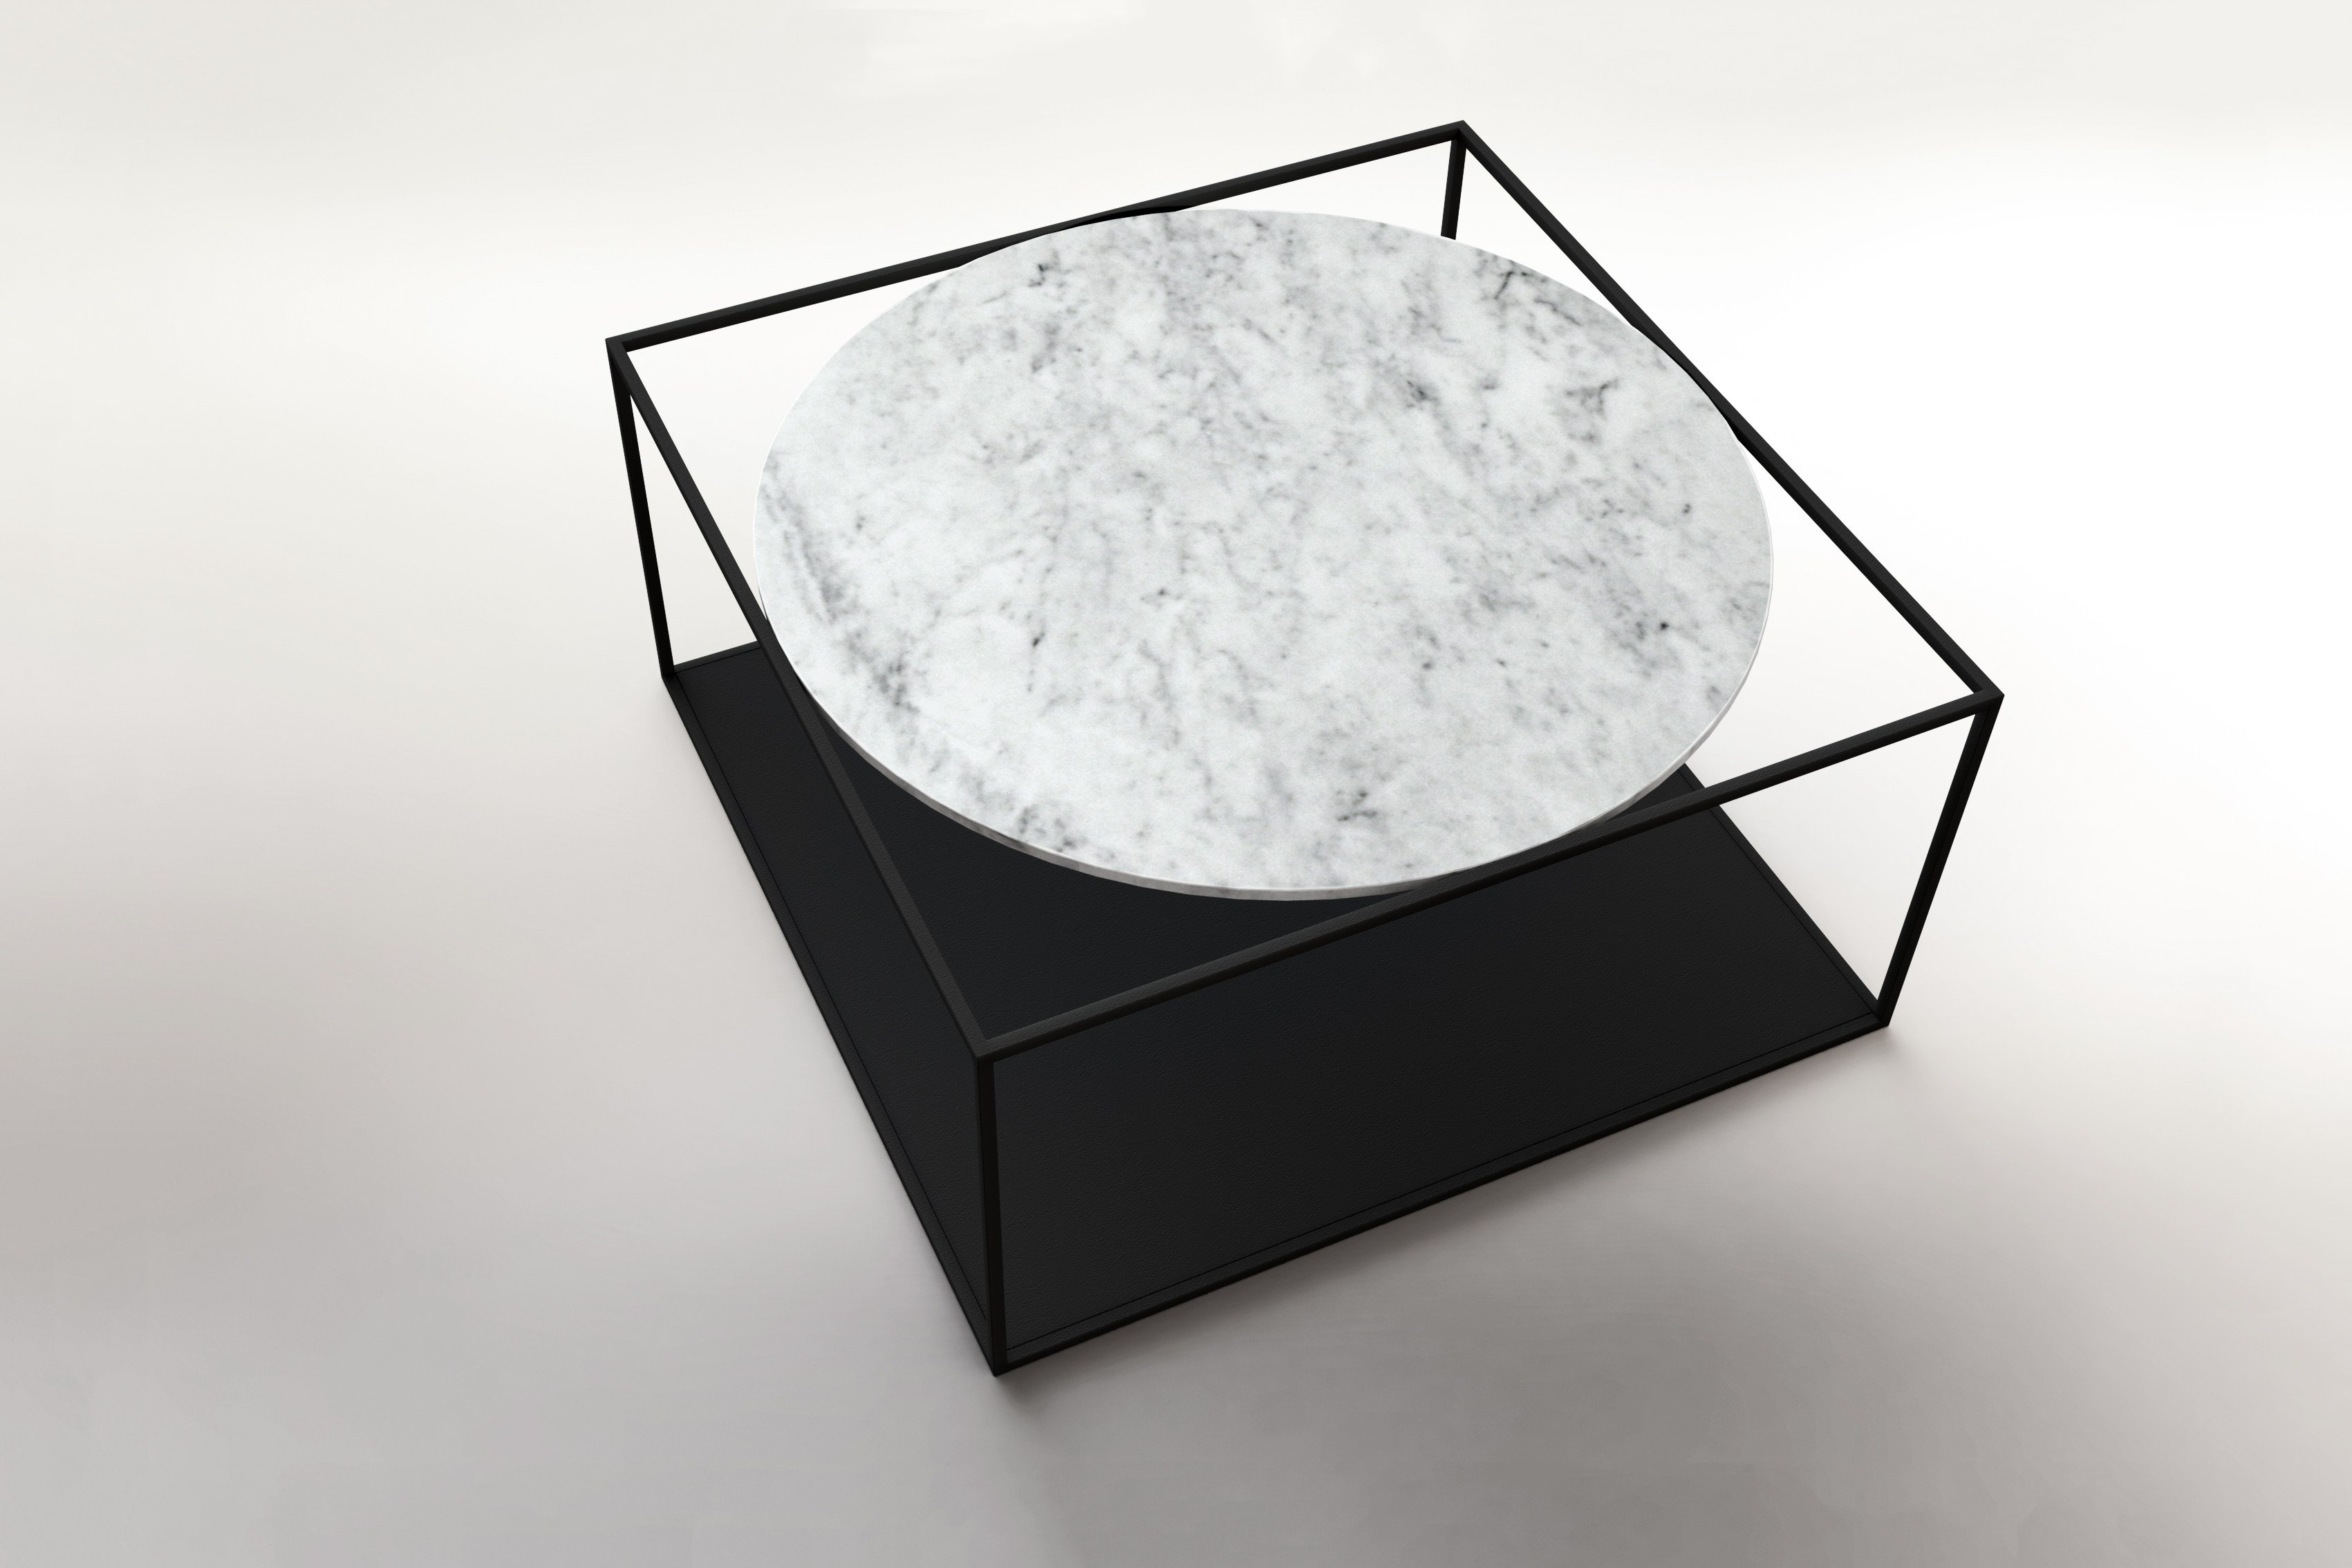 G3 marble coffee table by roche bobois design johan lindst n for Table basse scandinave marbre